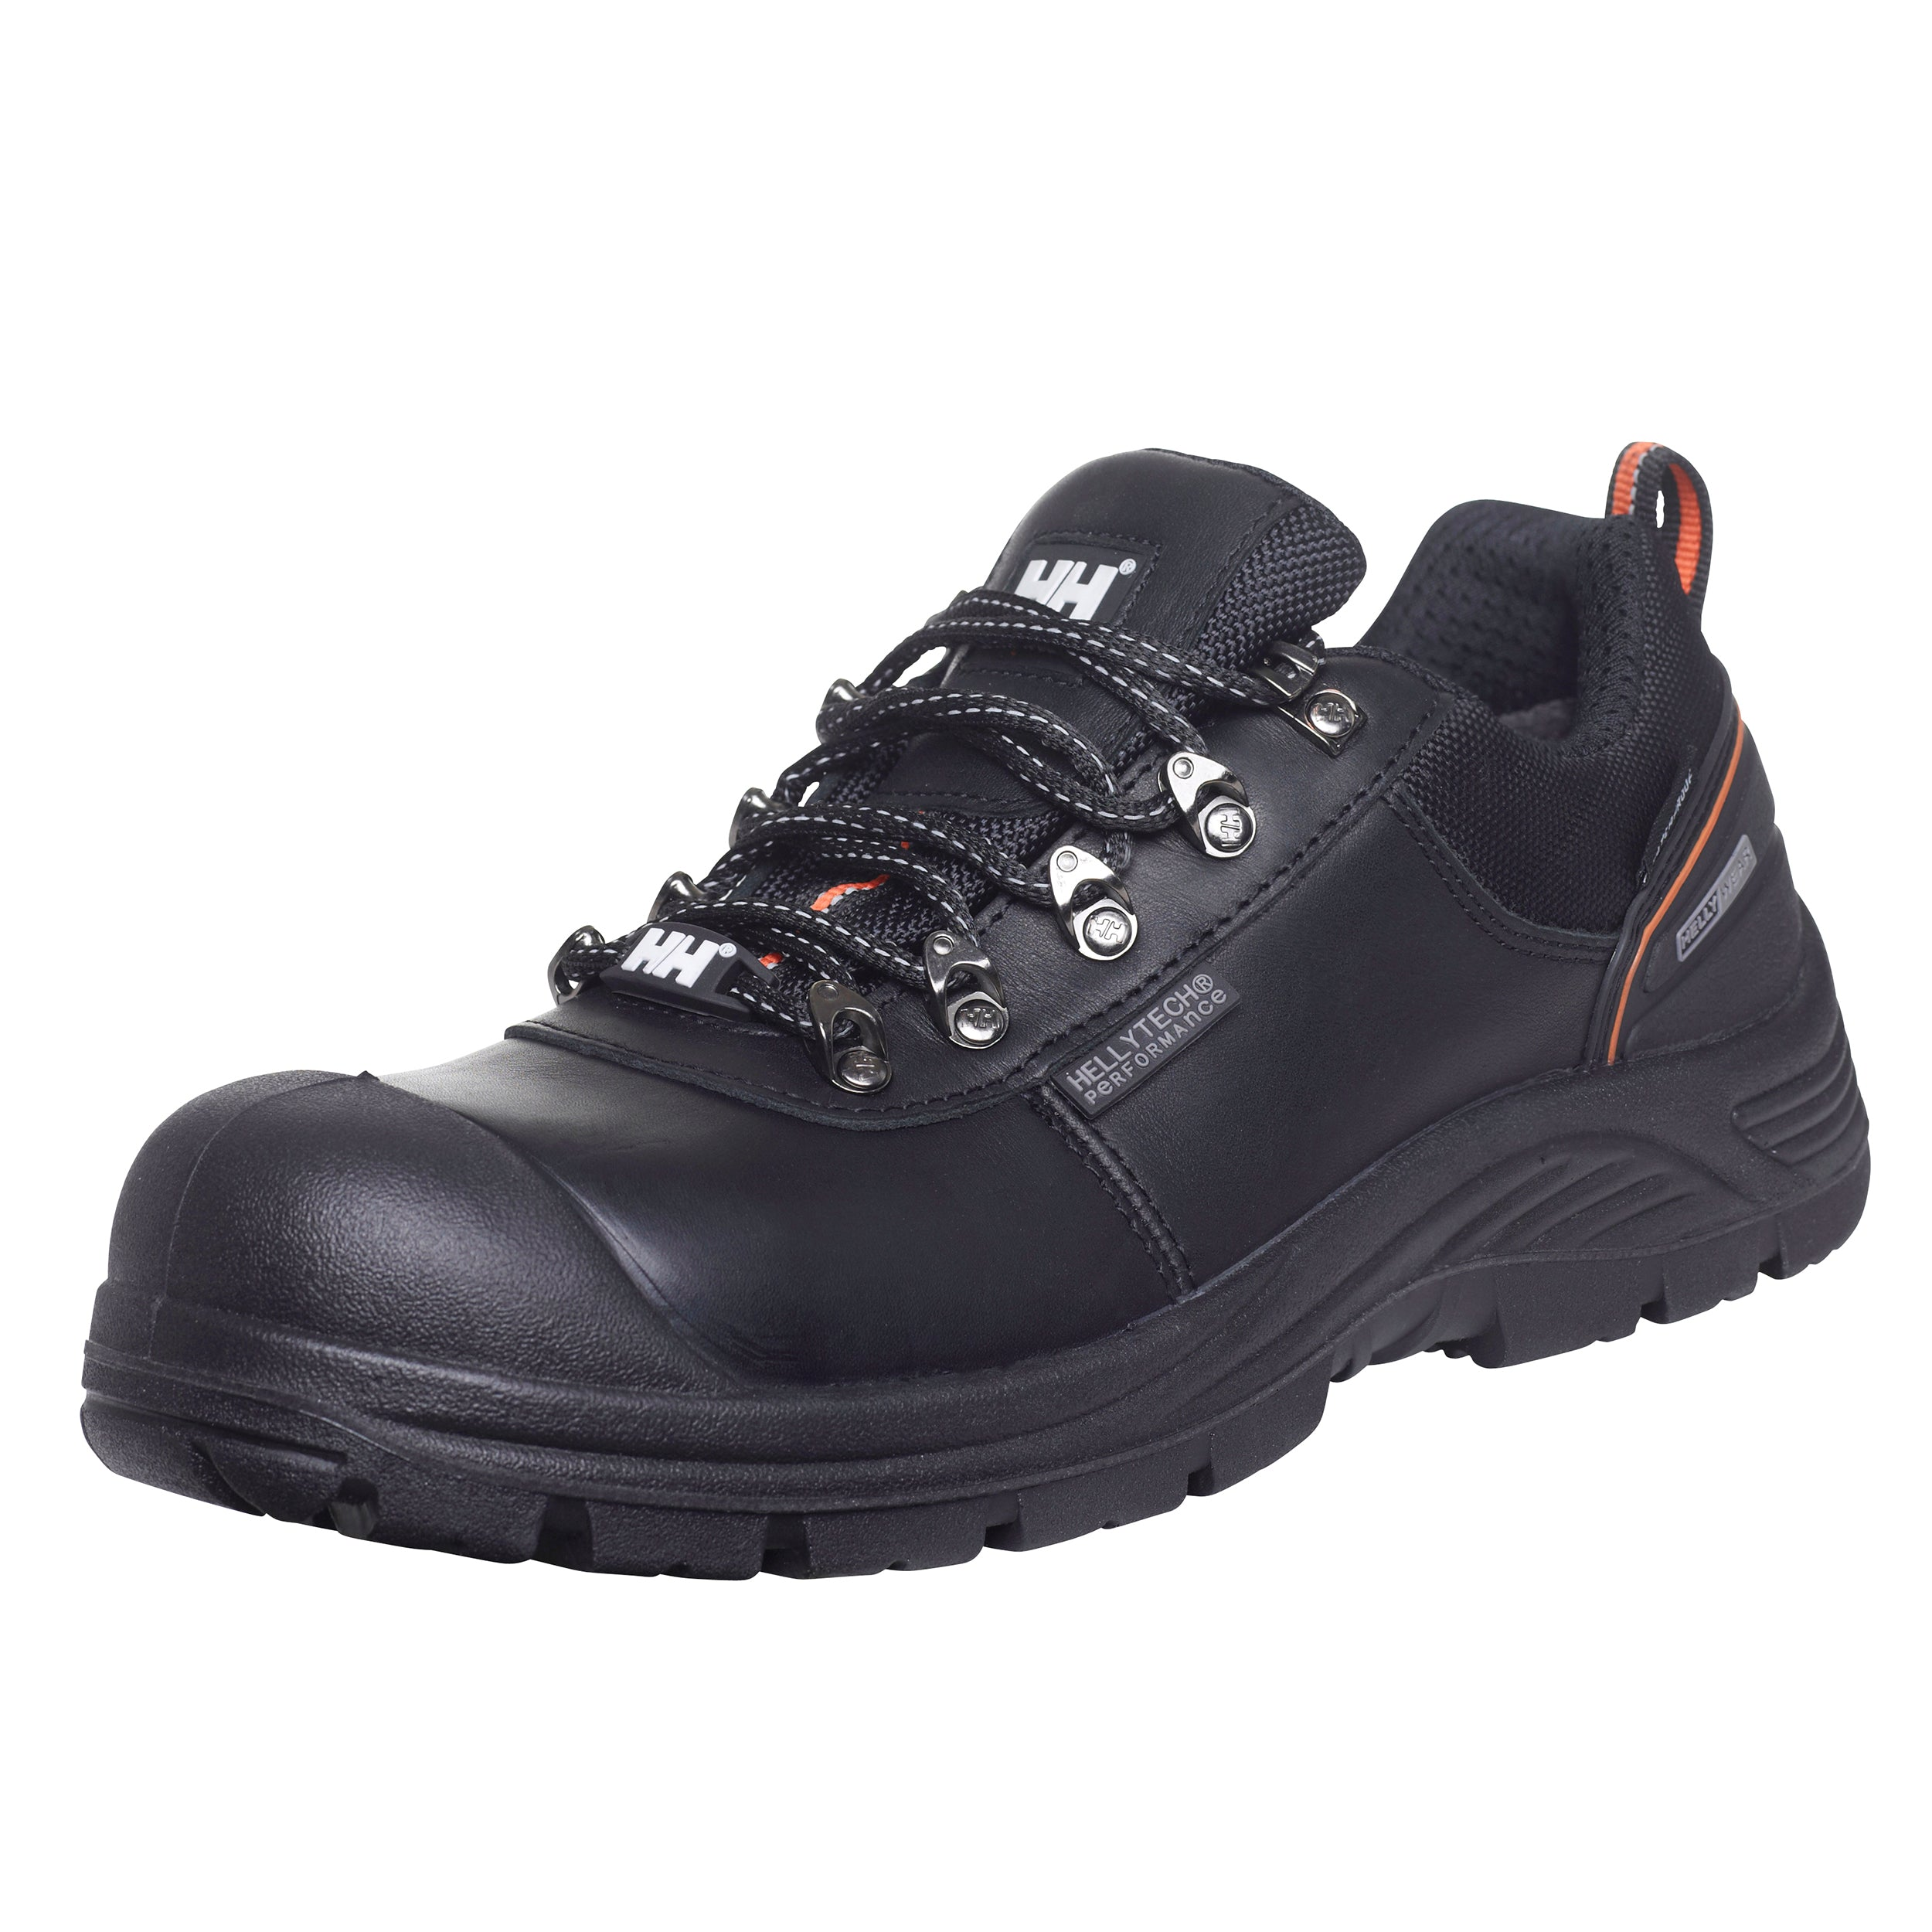 d21db03395 Buy Helly Hansen 78200 Chelsea Low HT Safety Shoes Online | Engineering  Agencies